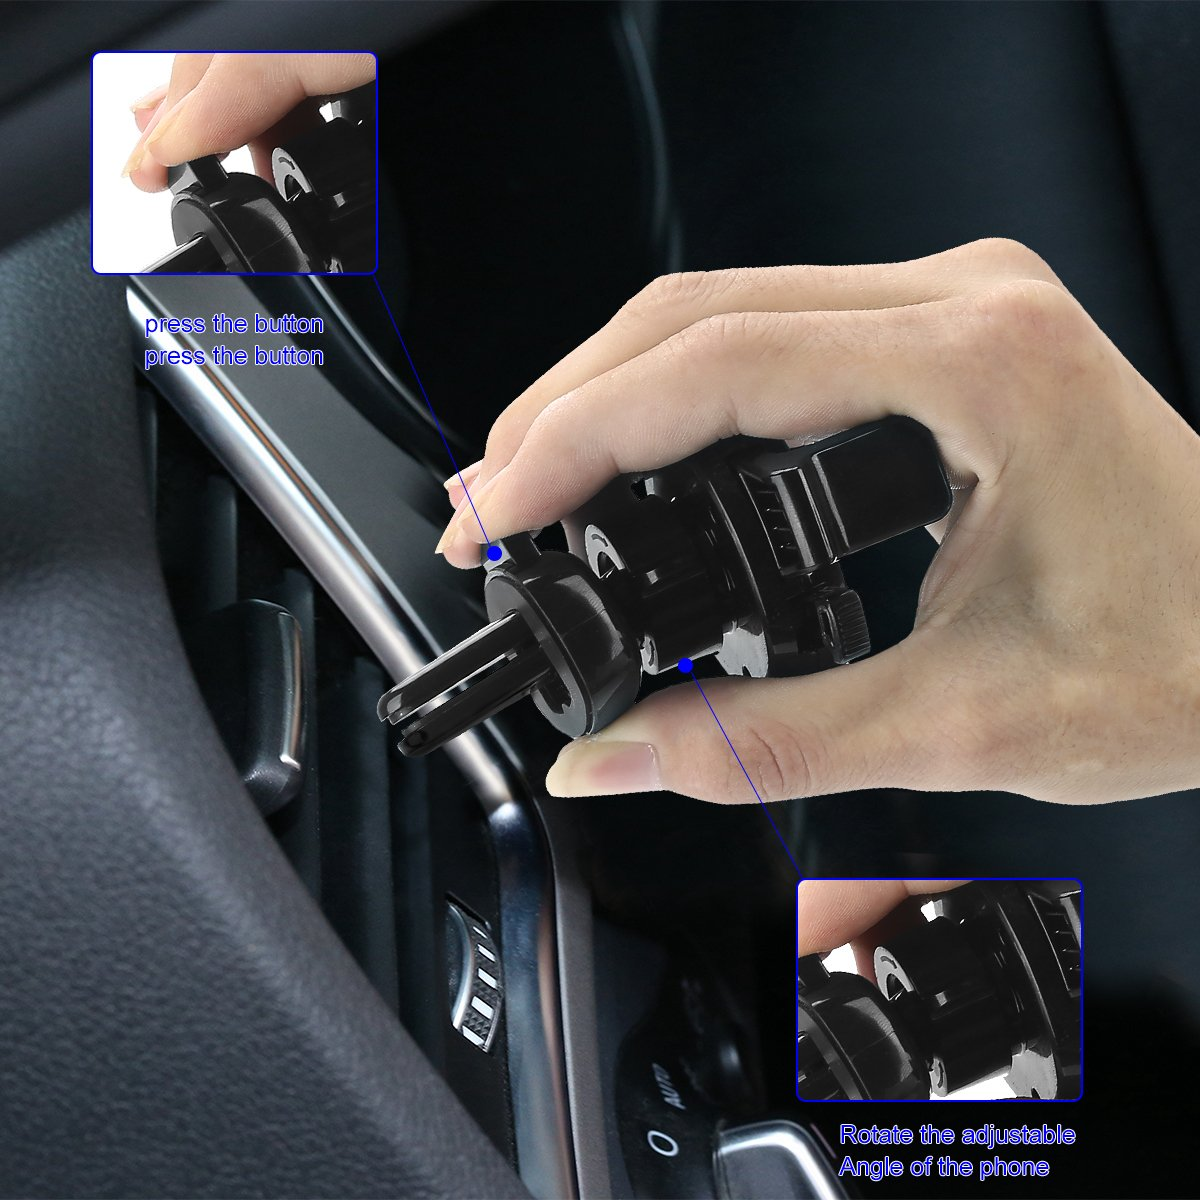 Samsung Galaxy Google Nexus LG and More Between 3.5-6 inches DGM5140 VISNFA Cell Phone Holder for Car Vent Phone Mount New Easy One-Touch Design Super Convenient for iPhone x 8 Plus//7Plus//6s//6Plus//5S